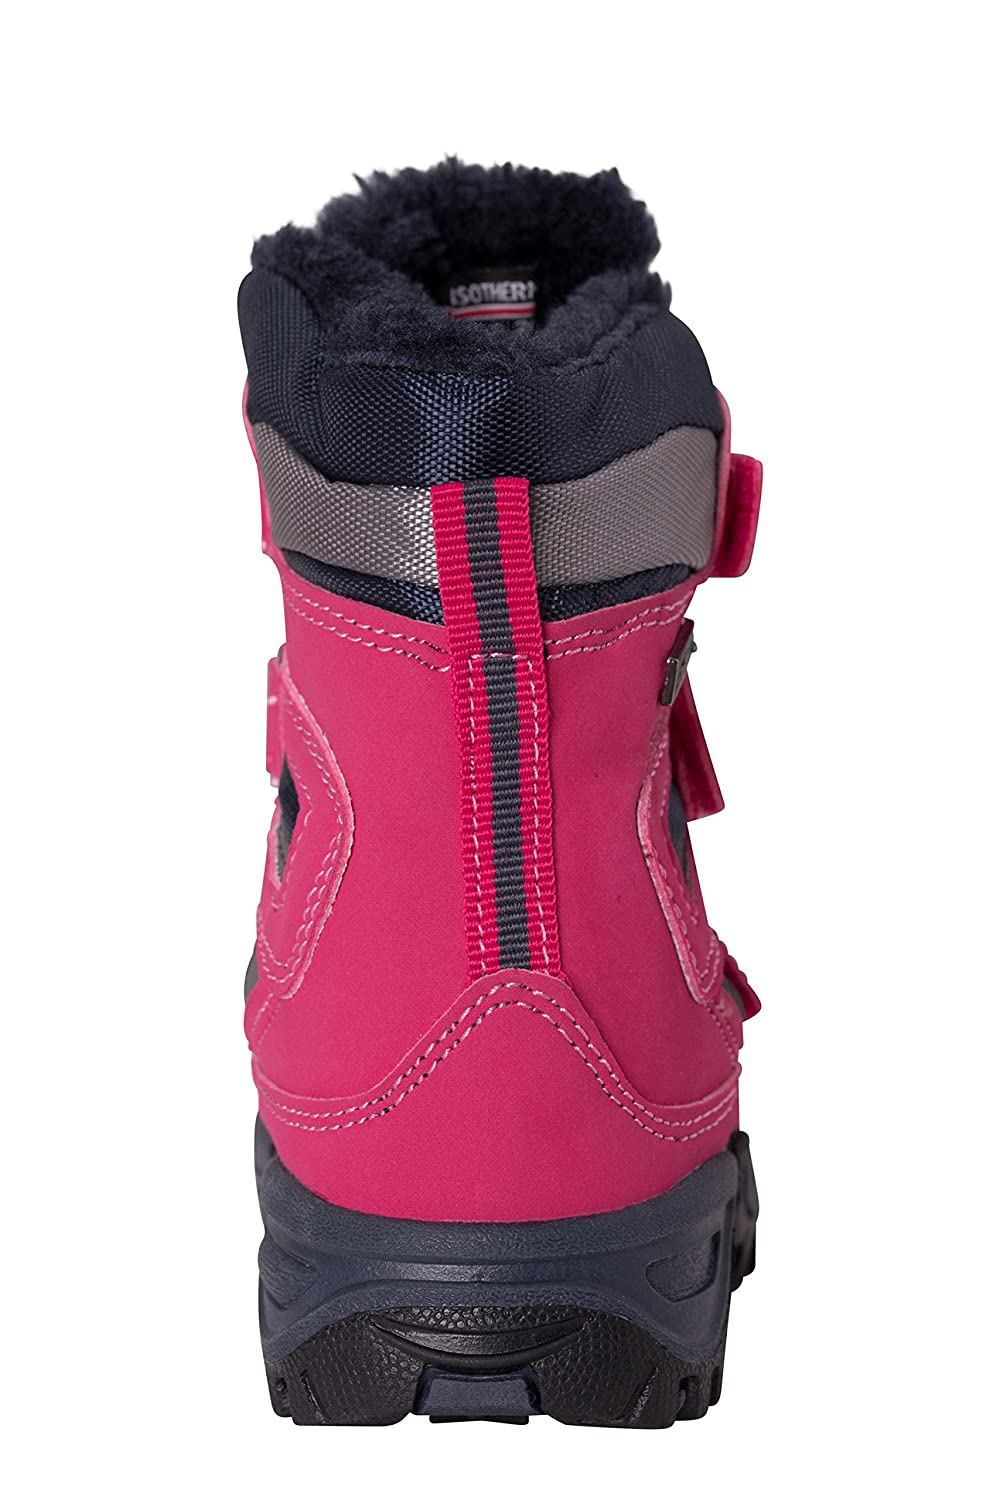 Hook /& Loop Fittings Mountain Warehouse Chill Junior Waterproof Snow Boots Breathable Mesh Upper for Cold Winter Weather Isotherm Heat Retention Technology